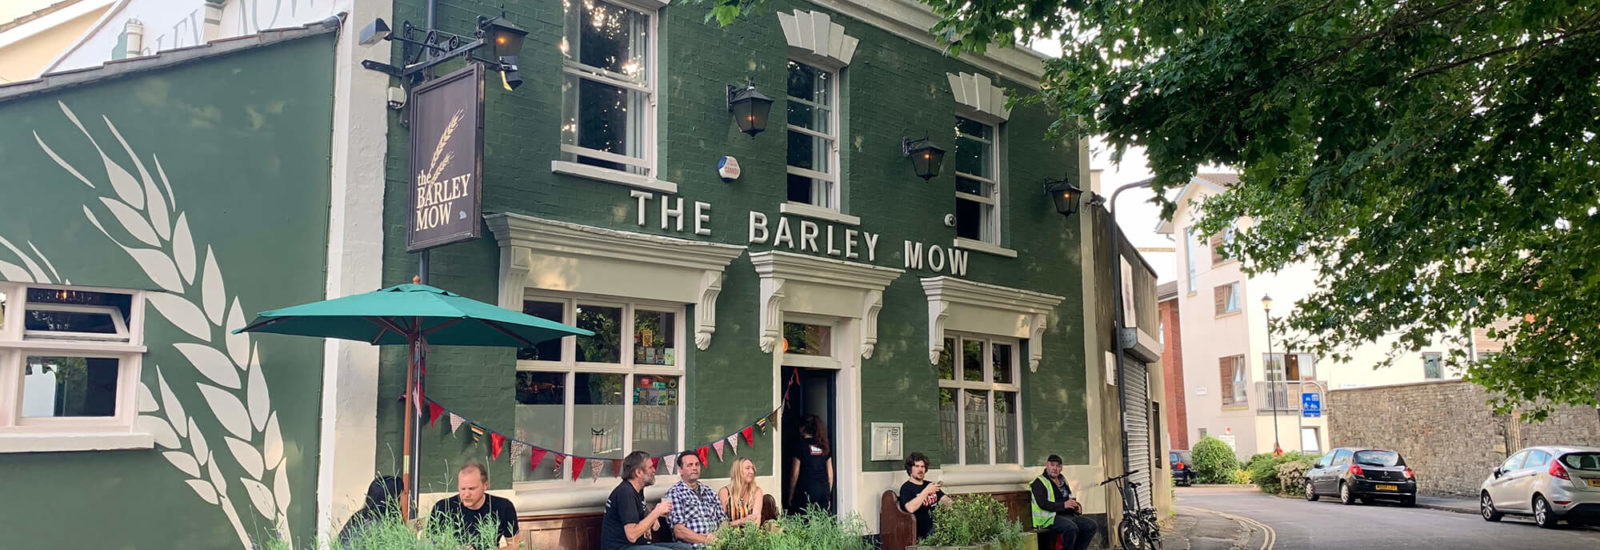 Image of The Barley Mow